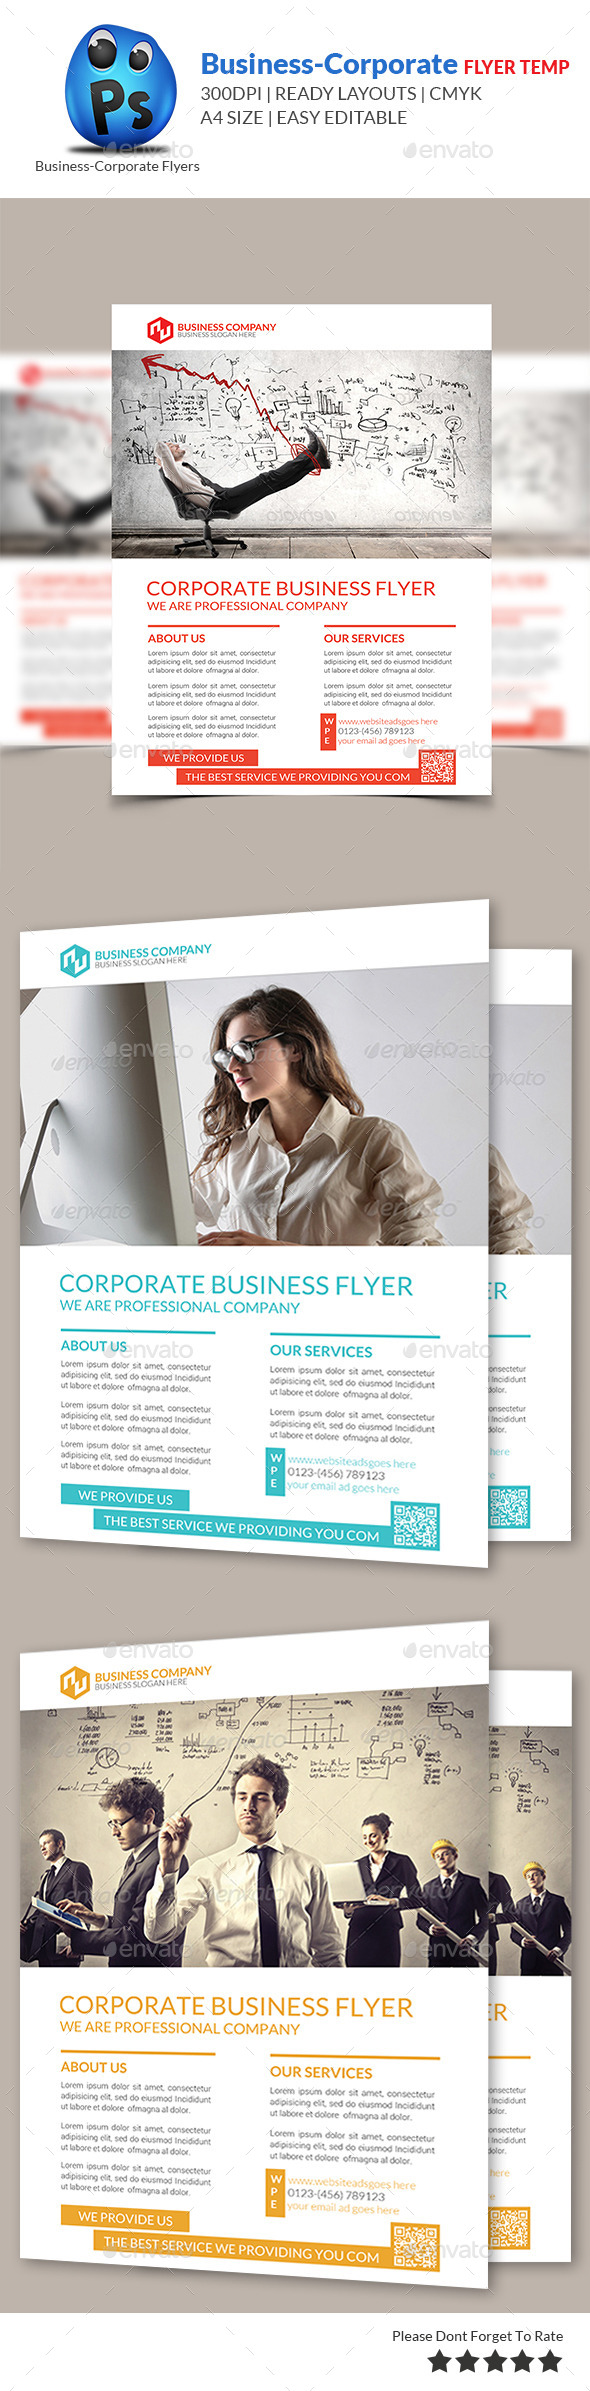 GraphicRiver Corporate Business Flyer Template 9140263